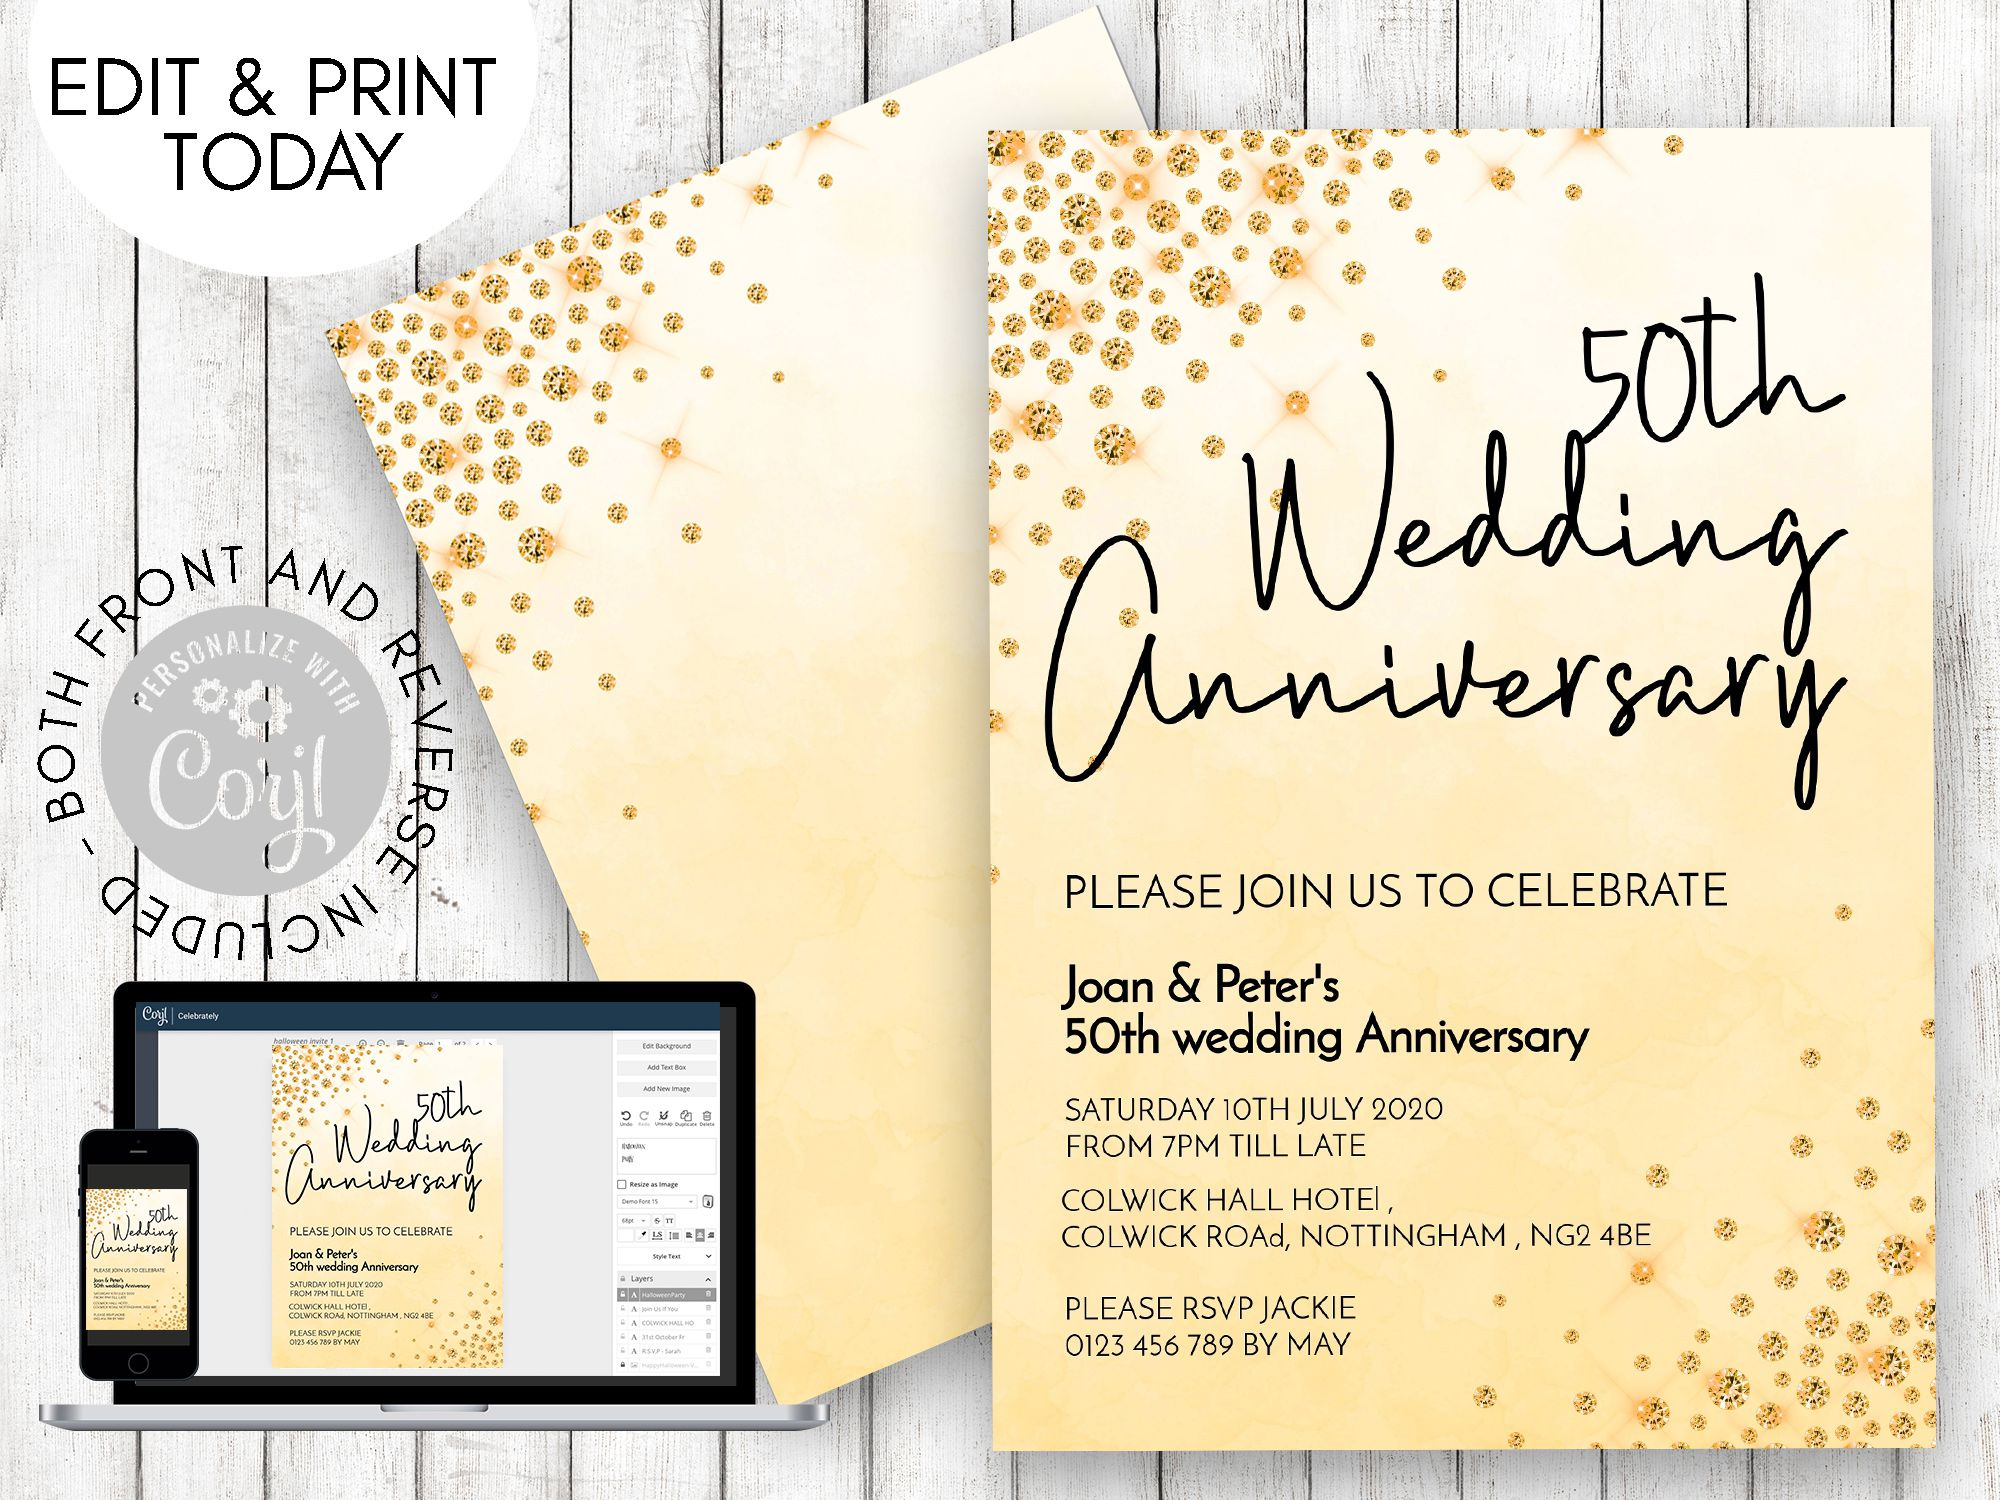 001 Excellent 50th Wedding Anniversary Party Invitation Template High Resolution  Templates FreeFull